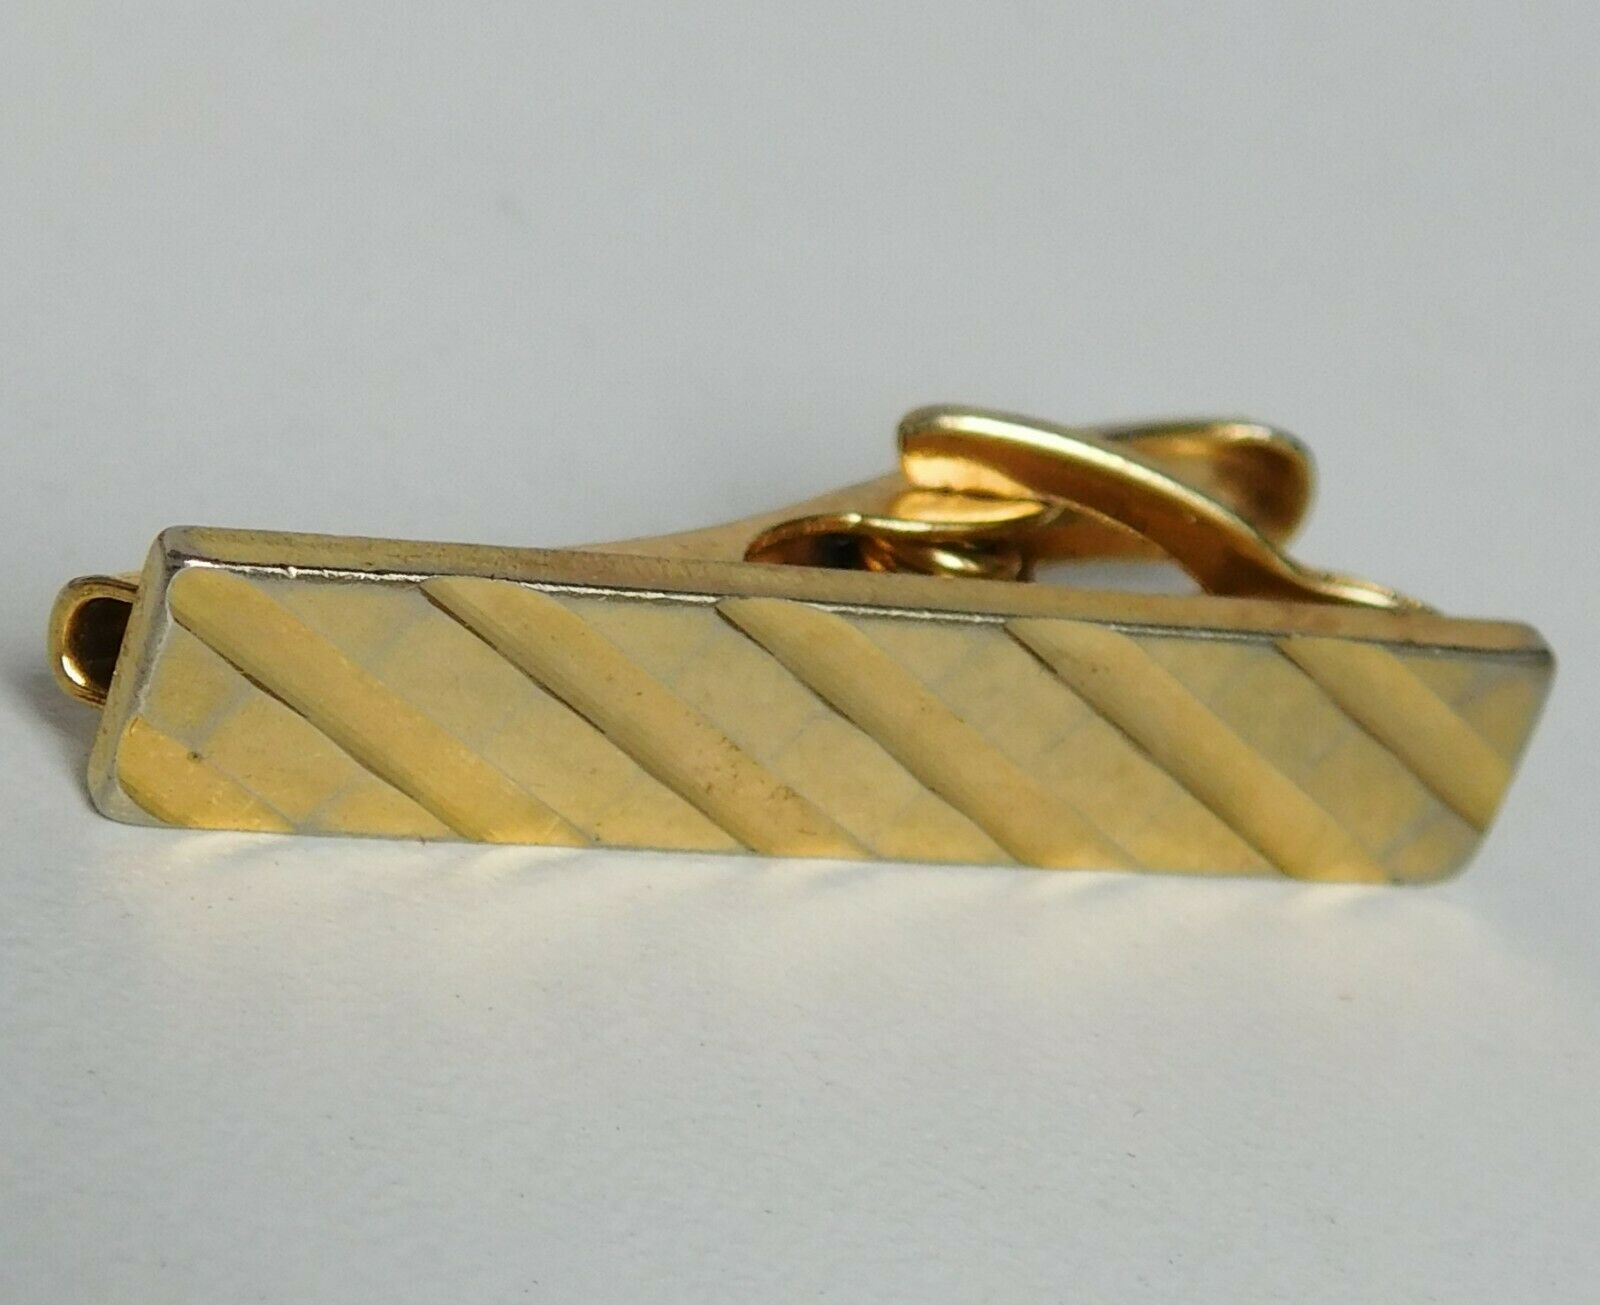 Short tie clip clasp classic mens goldtone jewellery 1.5 inch long